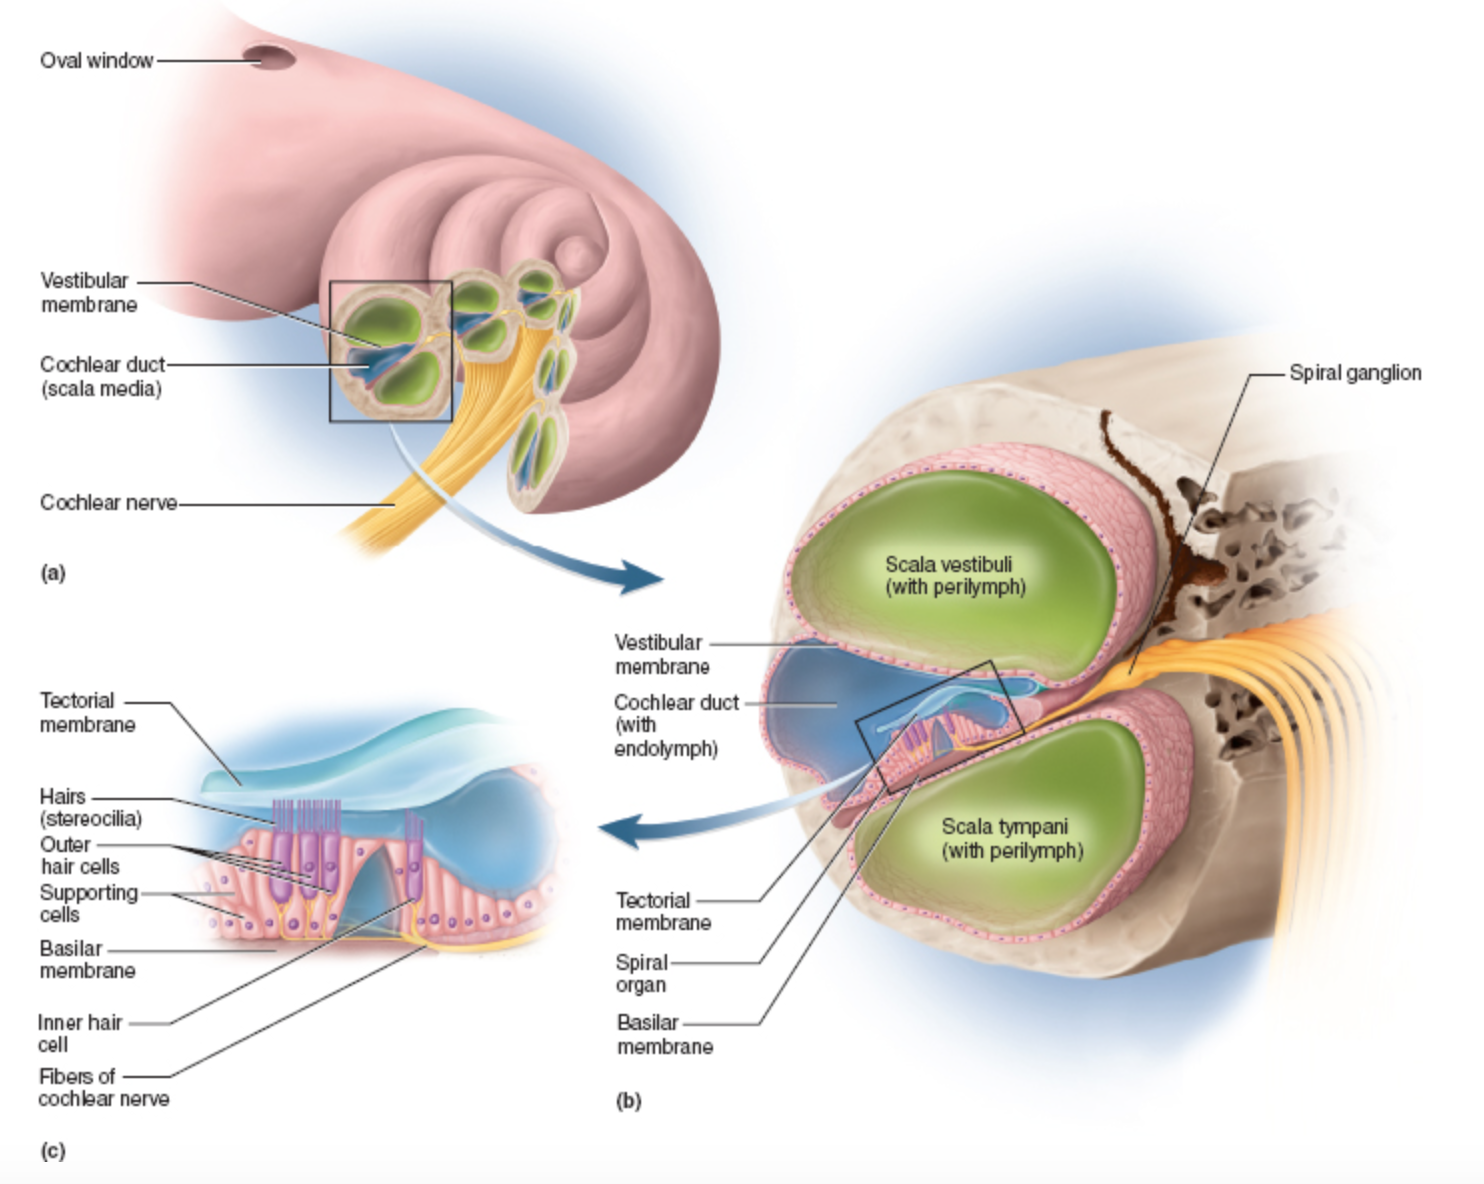 hight resolution of the fluids move into the scala vestibule and out the scala lymphani the cochlear duct contains the spiral organ organ of corti